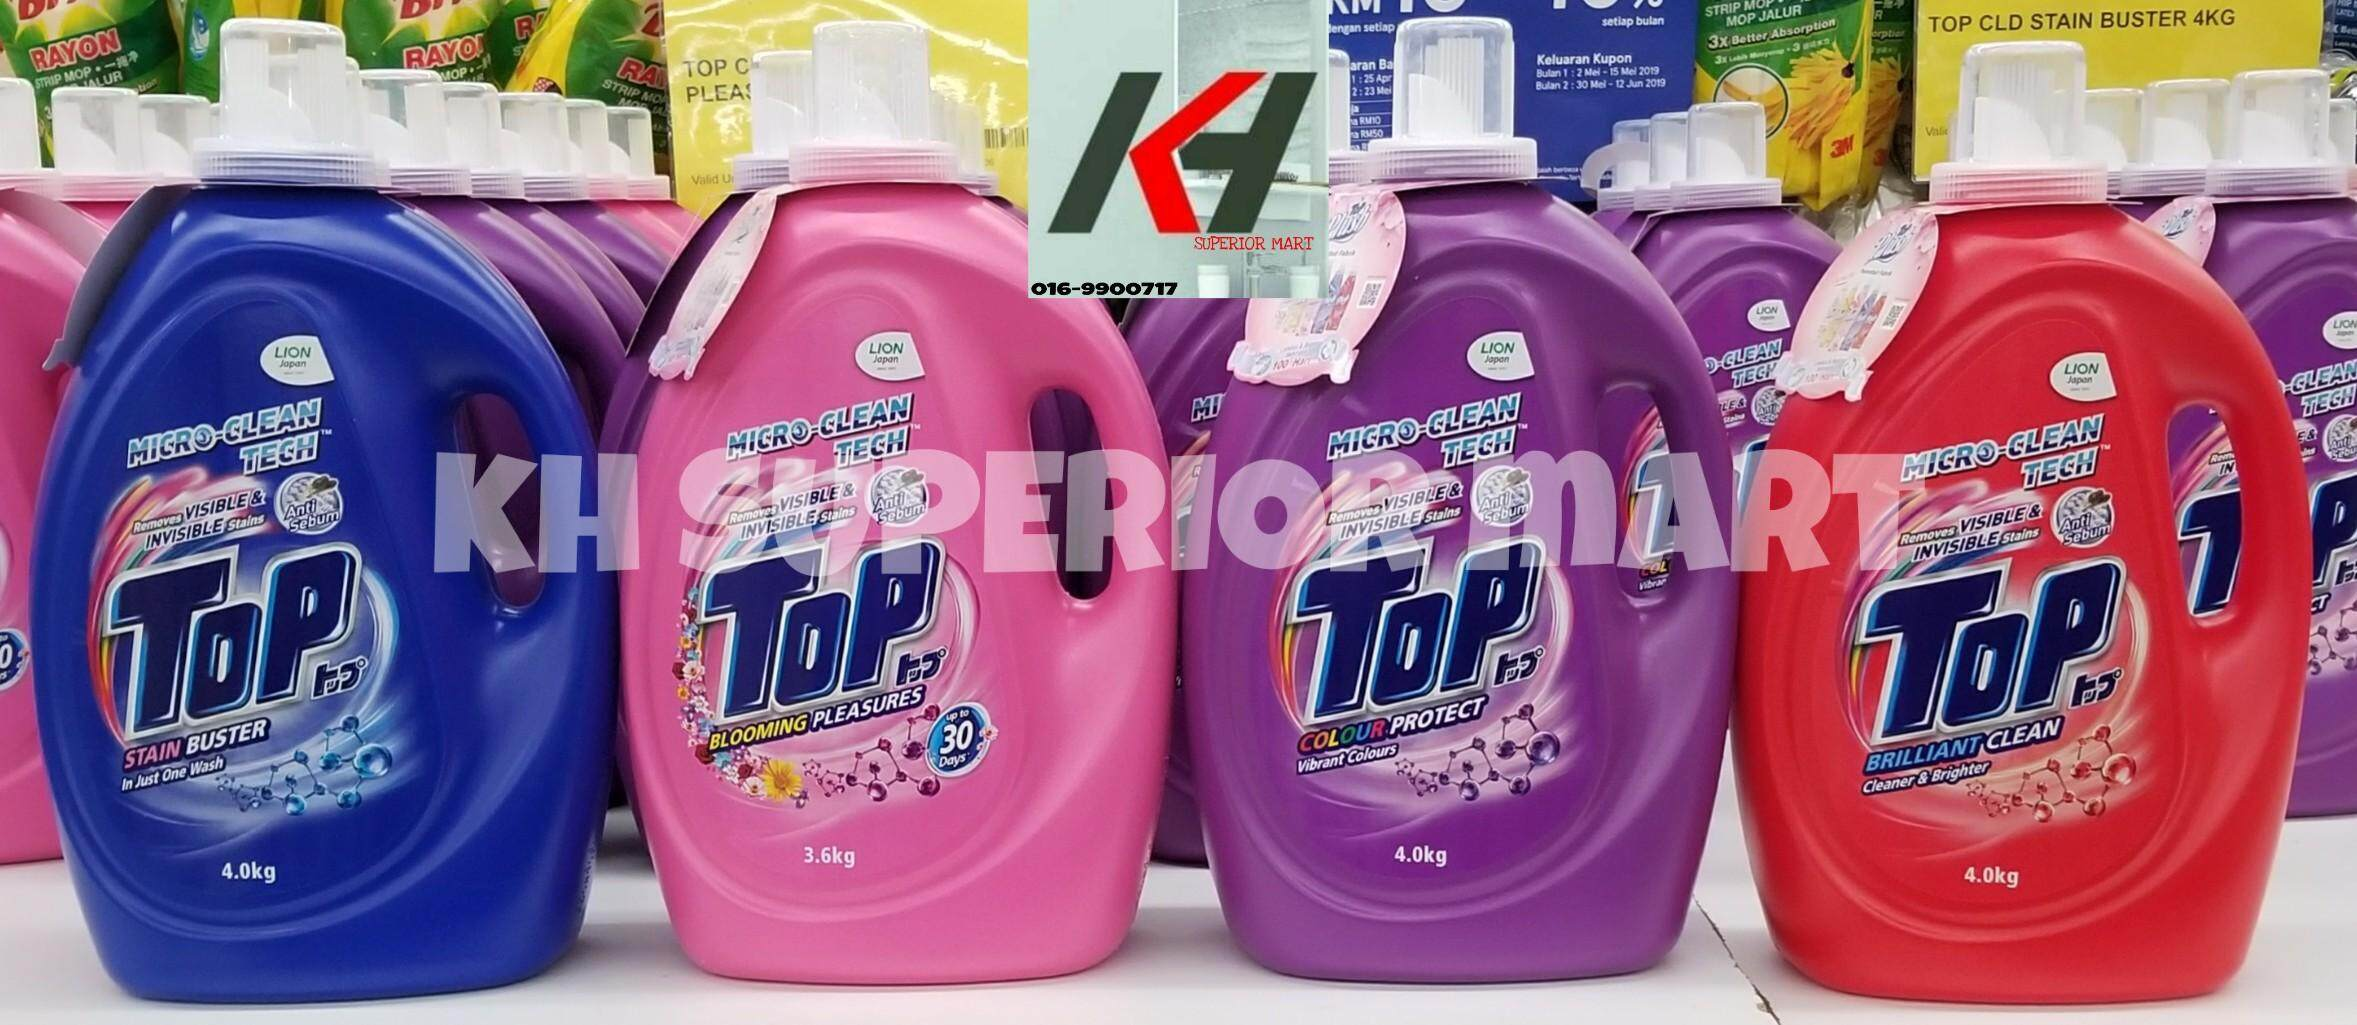 TOP STAIN BUSTER LIQUID DETERGENT MICRO CLEAN TECH 4.0KG  READY STOCK